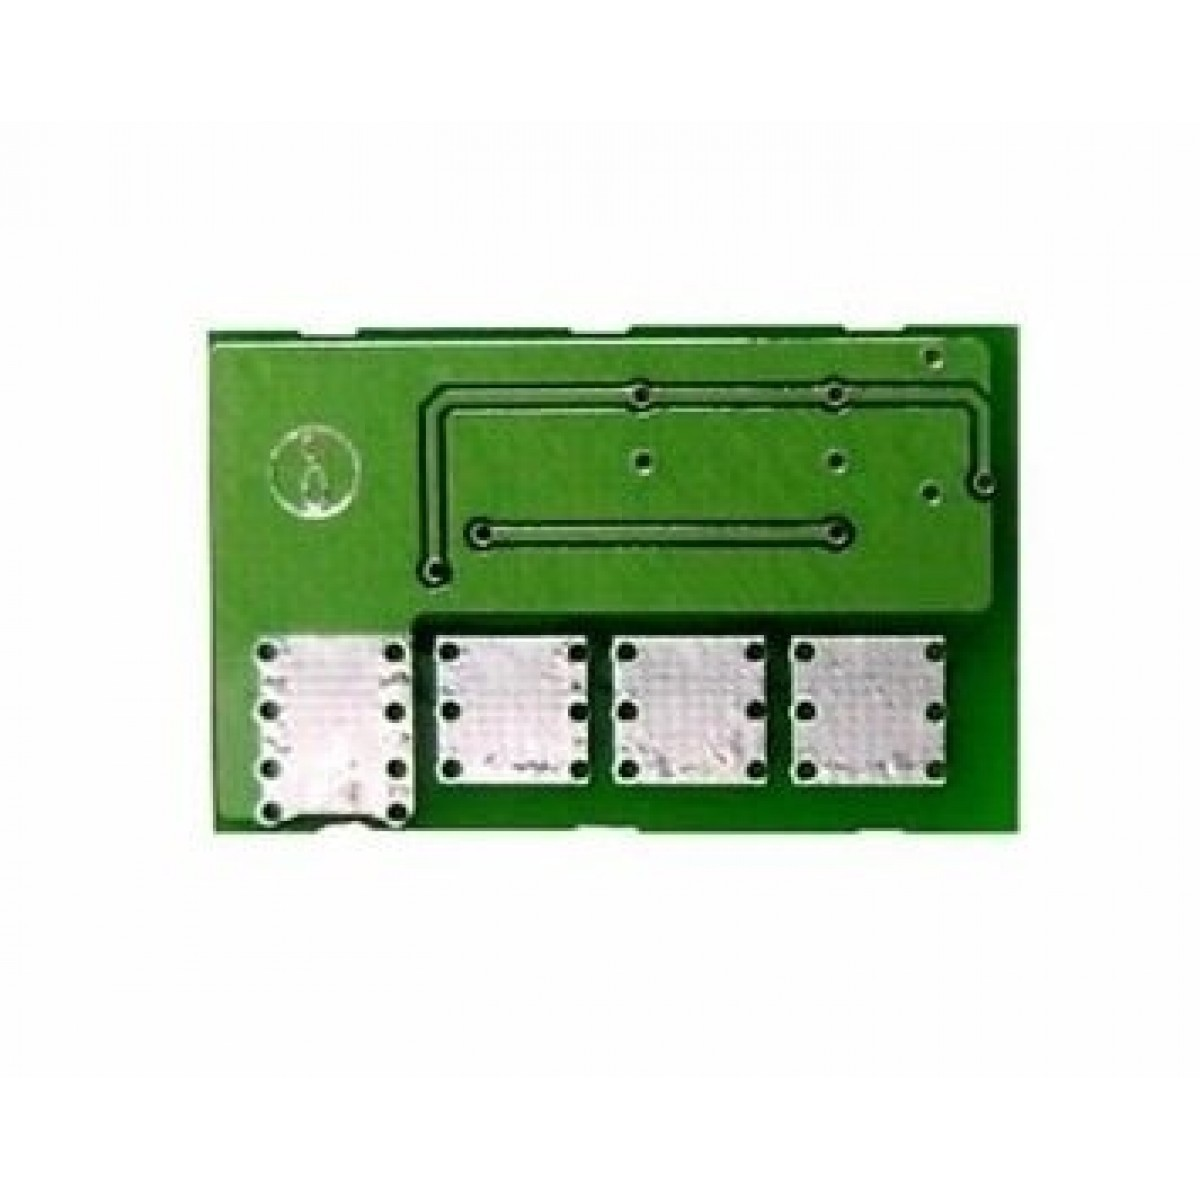 CHIP SAMSUNG ML-D 3050B 8 K